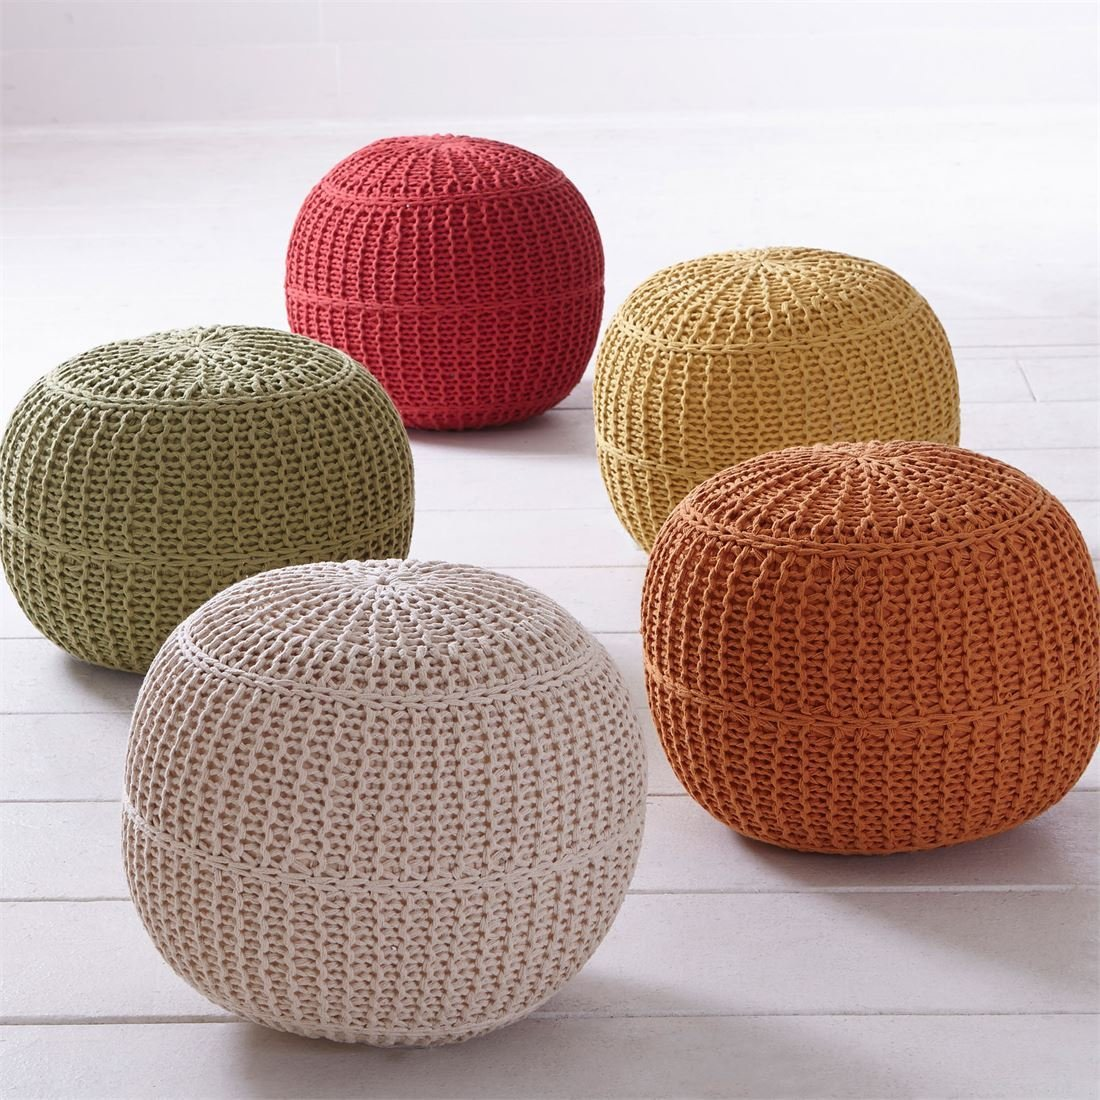 knitted pouf amazon.com: brylanehome hand-knitted ottoman pouf (red,0): kitchen u0026 dining itibems